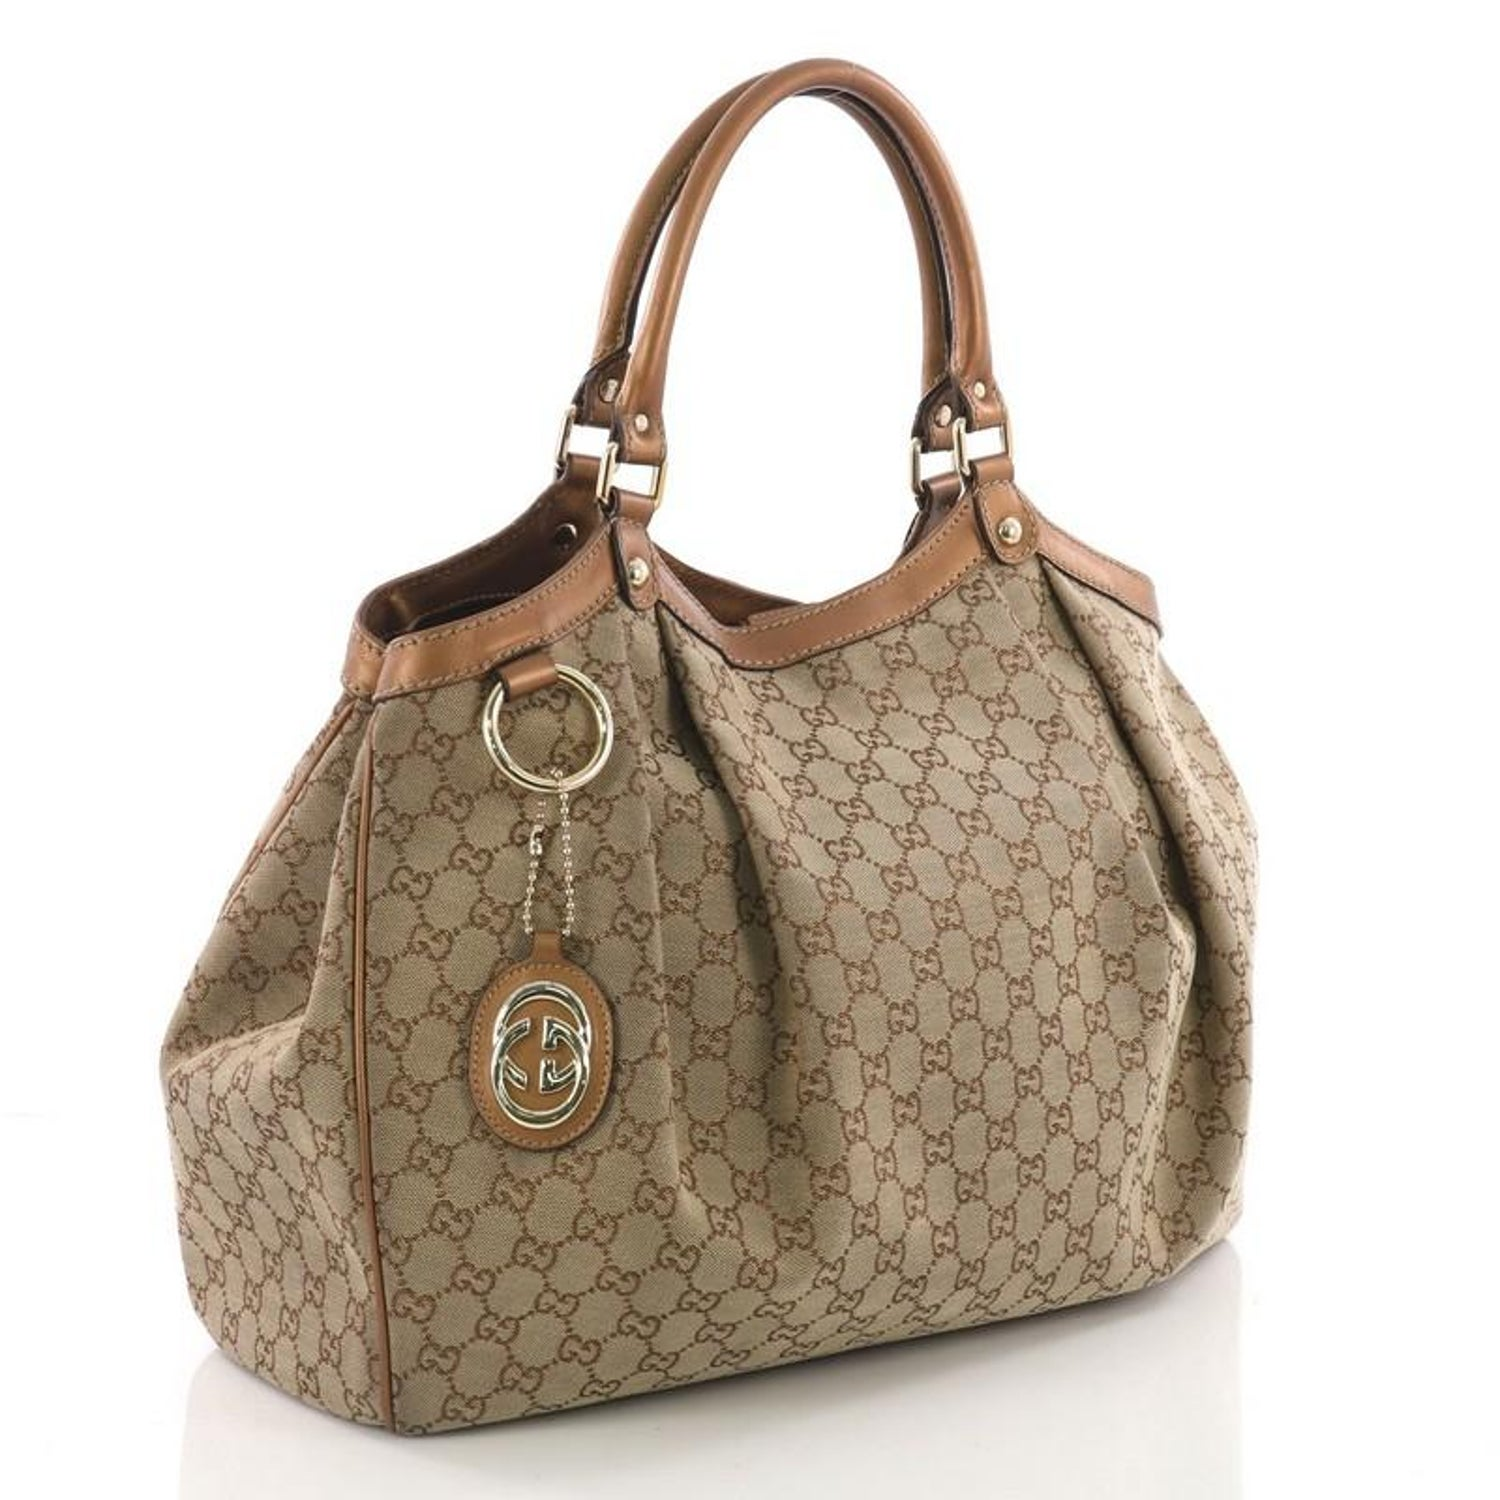 6d17218101213a Gucci Sukey Tote GG Canvas Large at 1stdibs